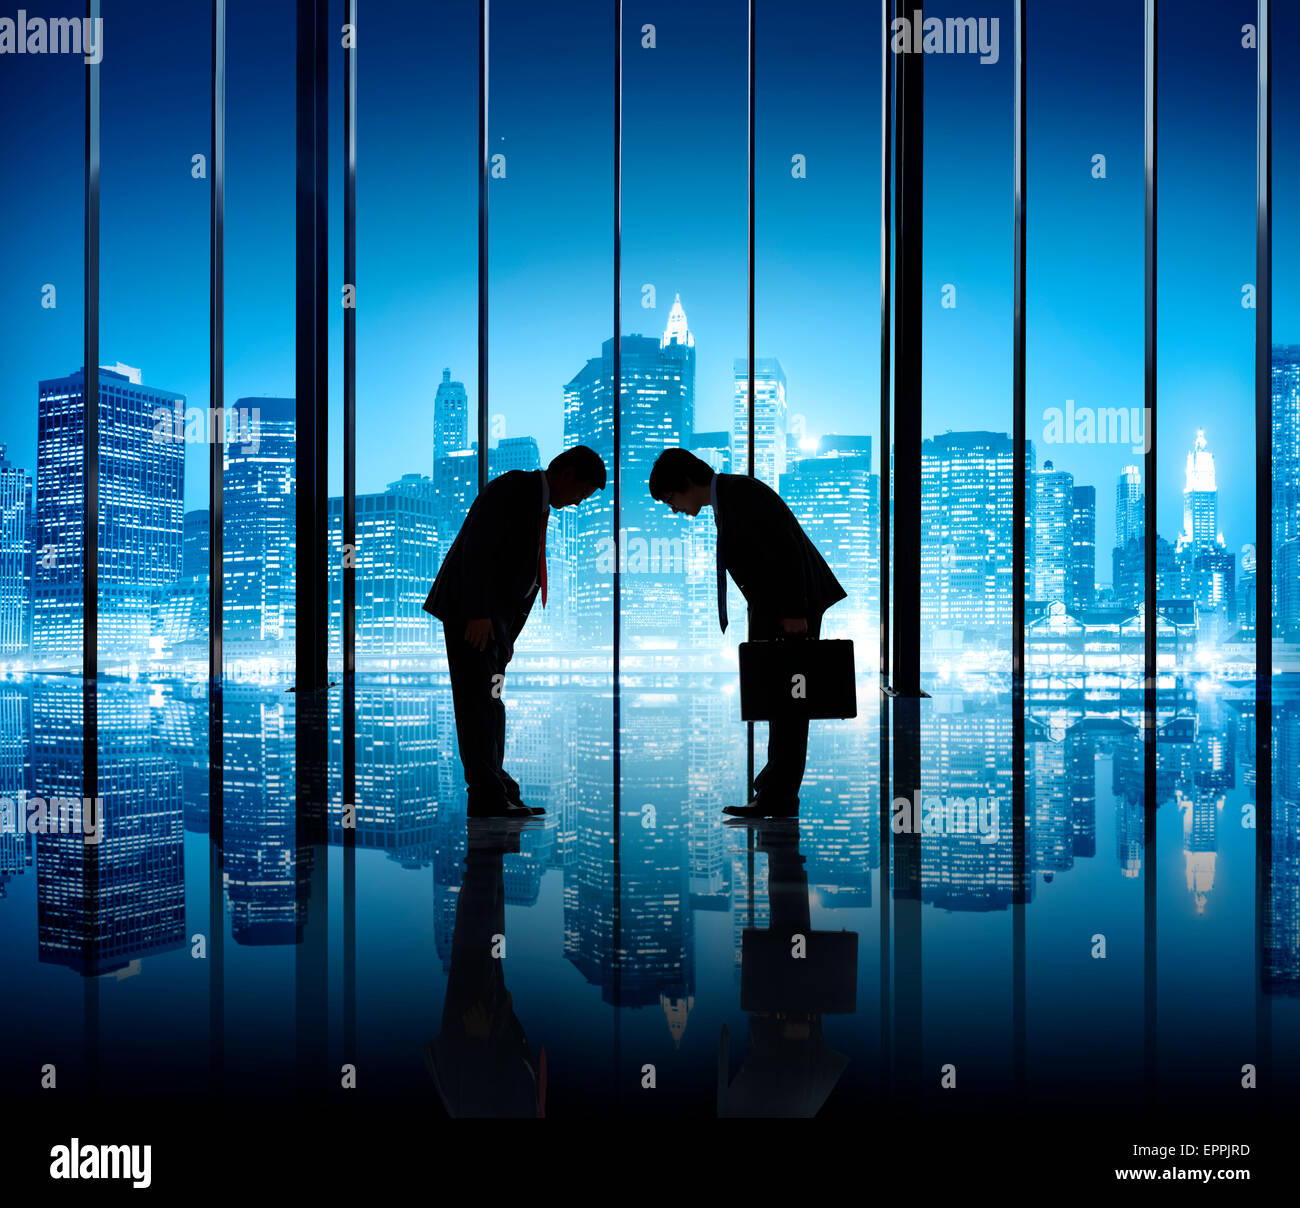 Two businessmen bowing to each other in an office building. - Stock Image